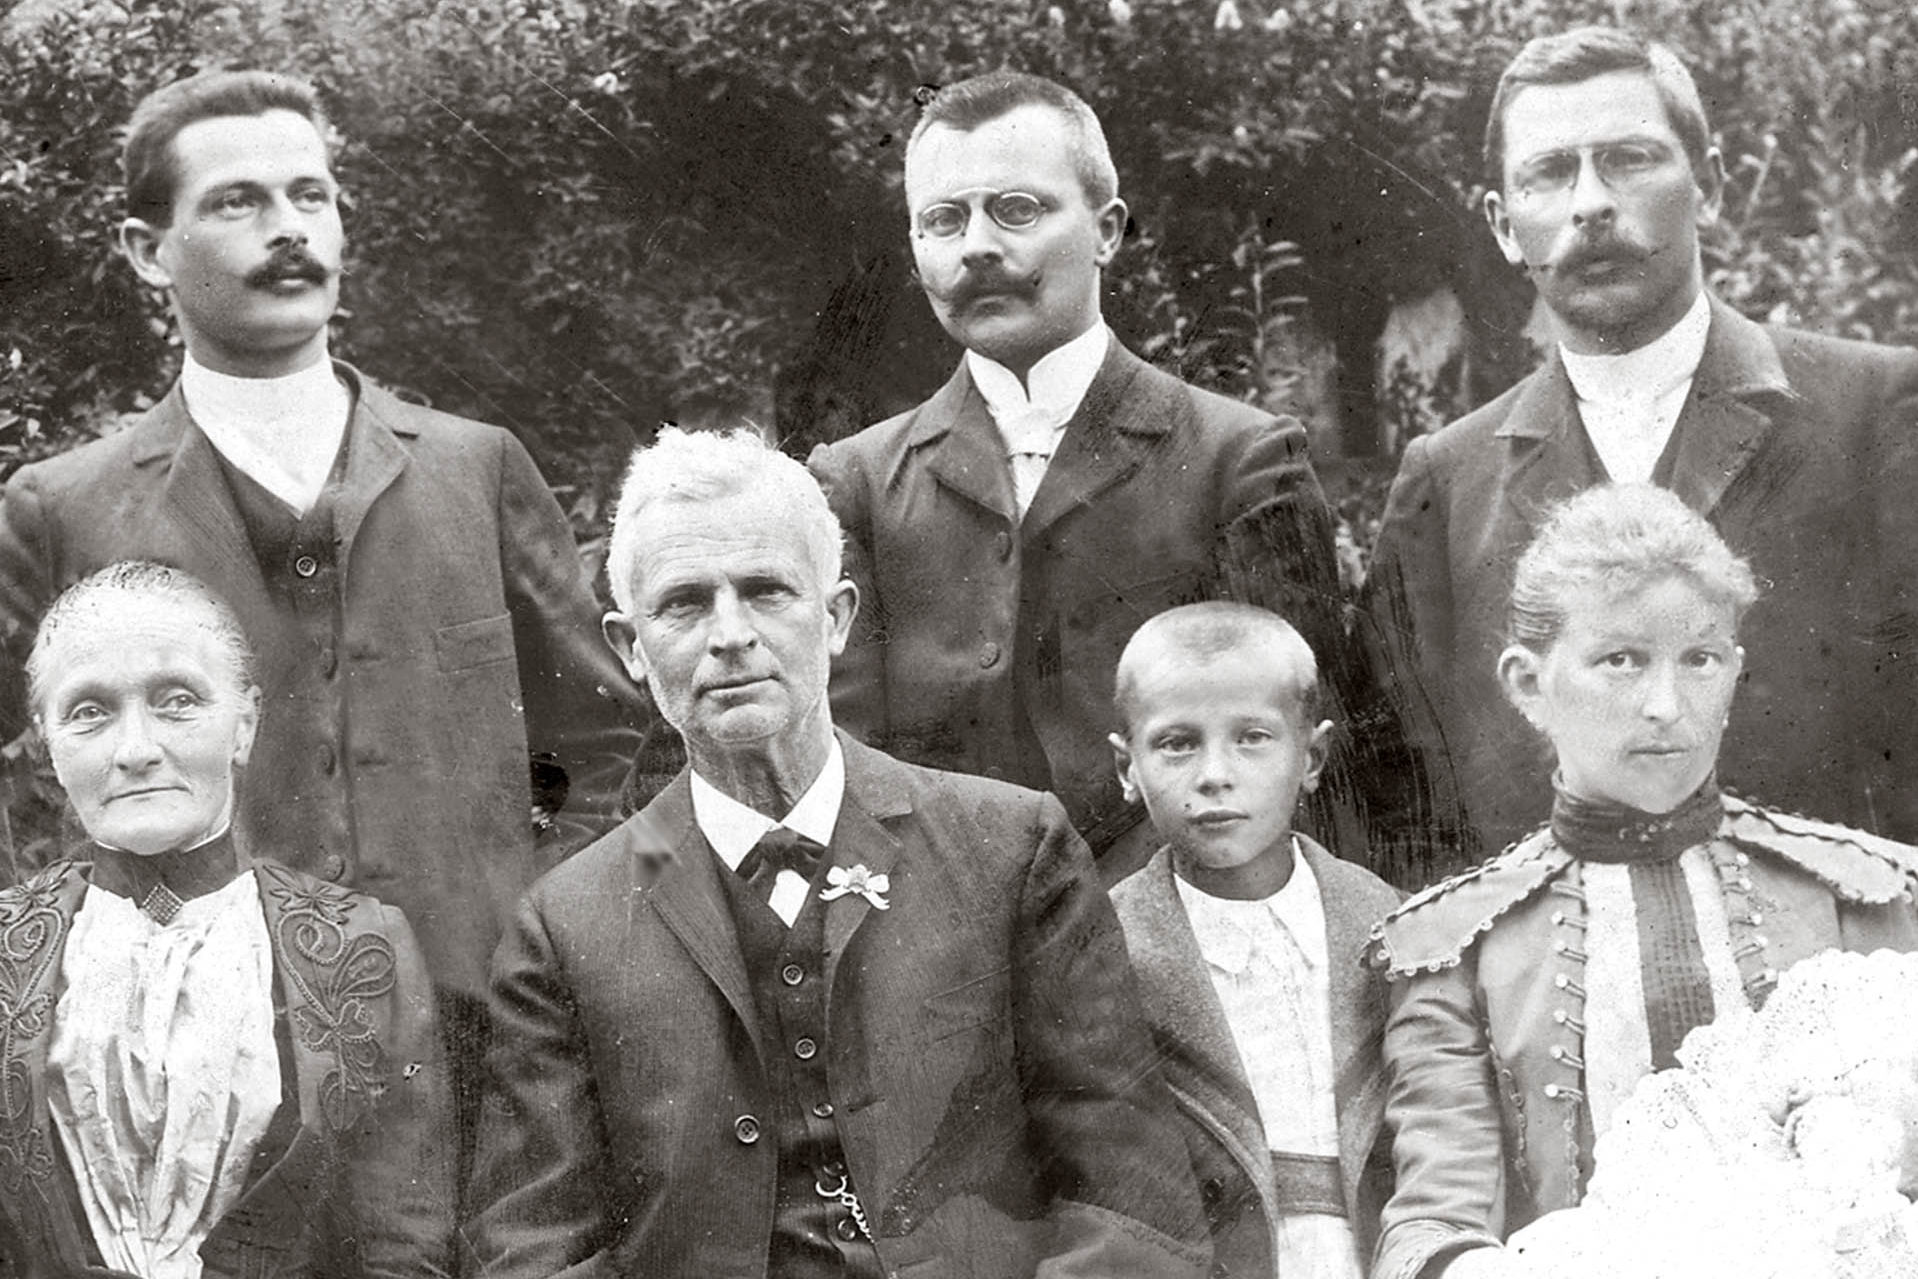 Alfred, Max, Paul Mühle